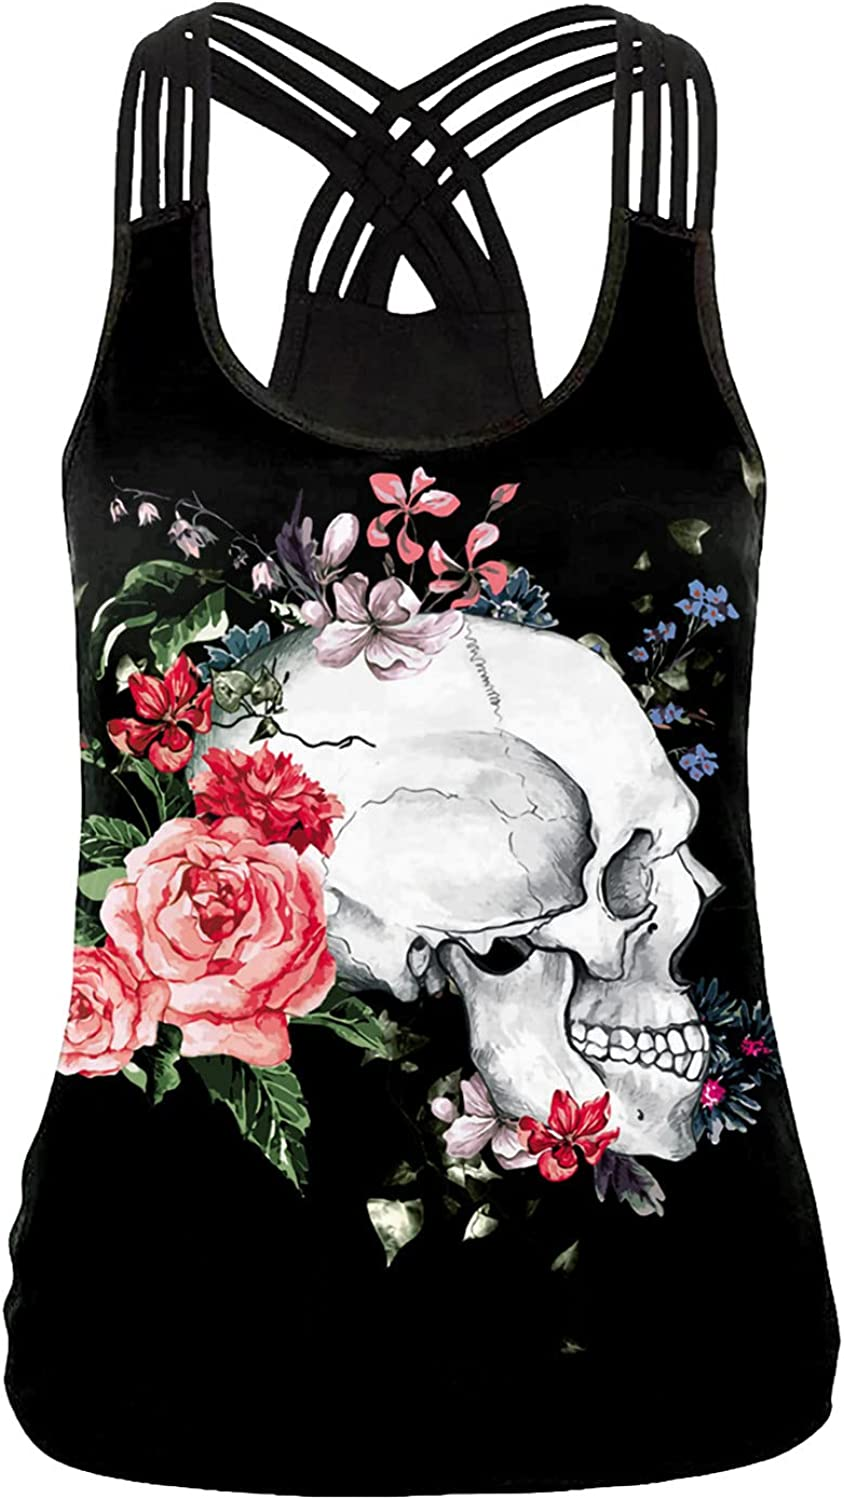 Tpingfe Halloween Tank Tops High order for Co Gothic Directly managed store Women Criss Cross